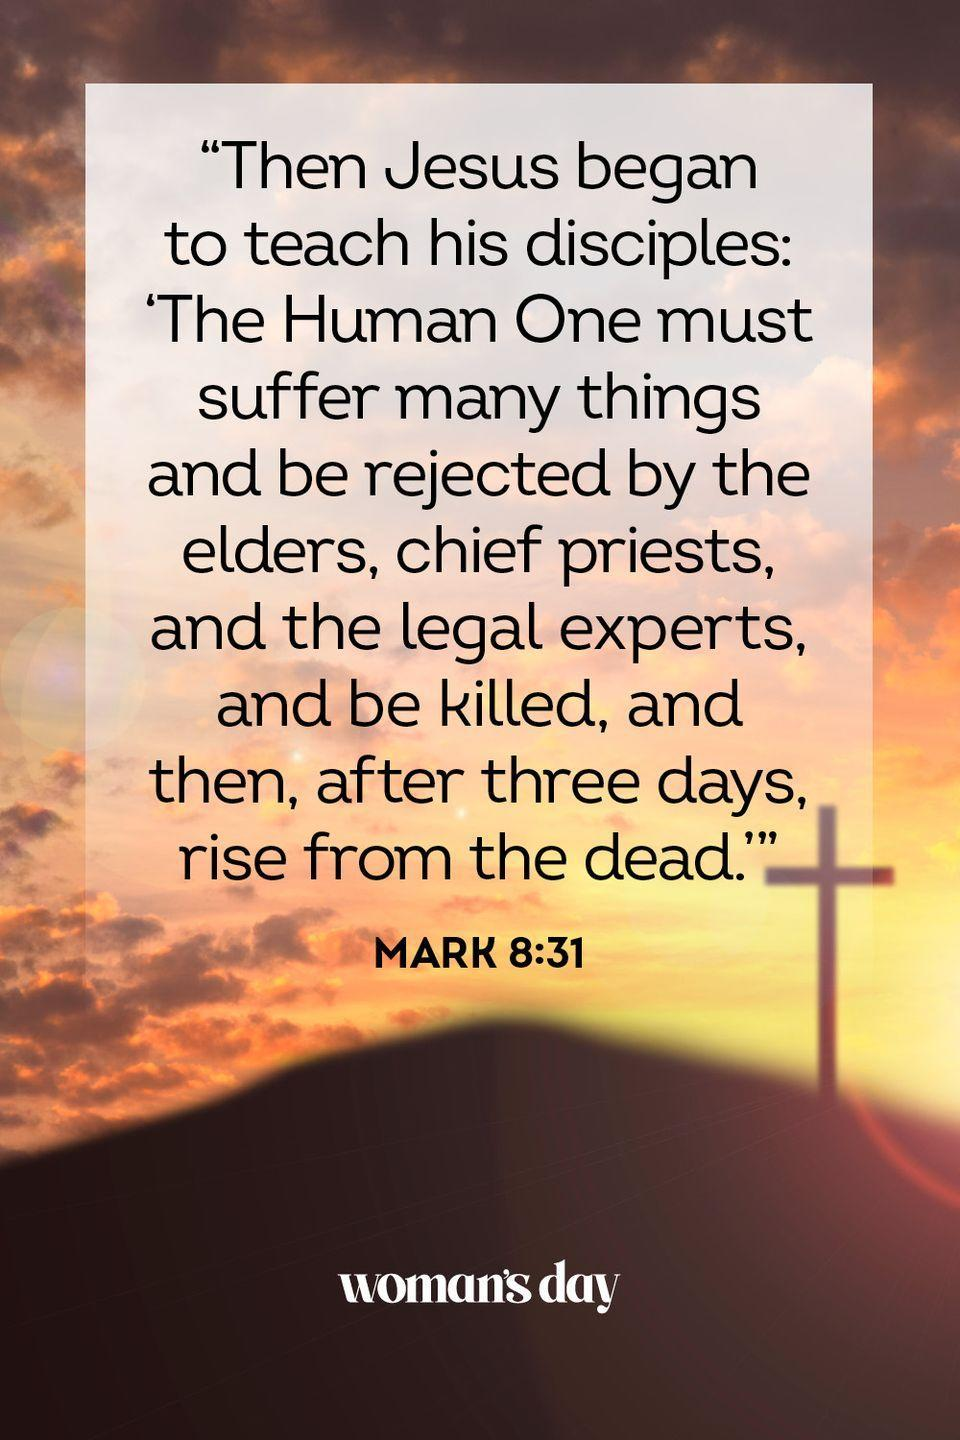 "<p>""Then Jesus began to teach his disciples: 'The Human One must suffer many things and be rejected by the elders, chief priests, and the legal experts, and be killed, and then, after three days, rise from the dead.'""— Mark 8:31</p>"